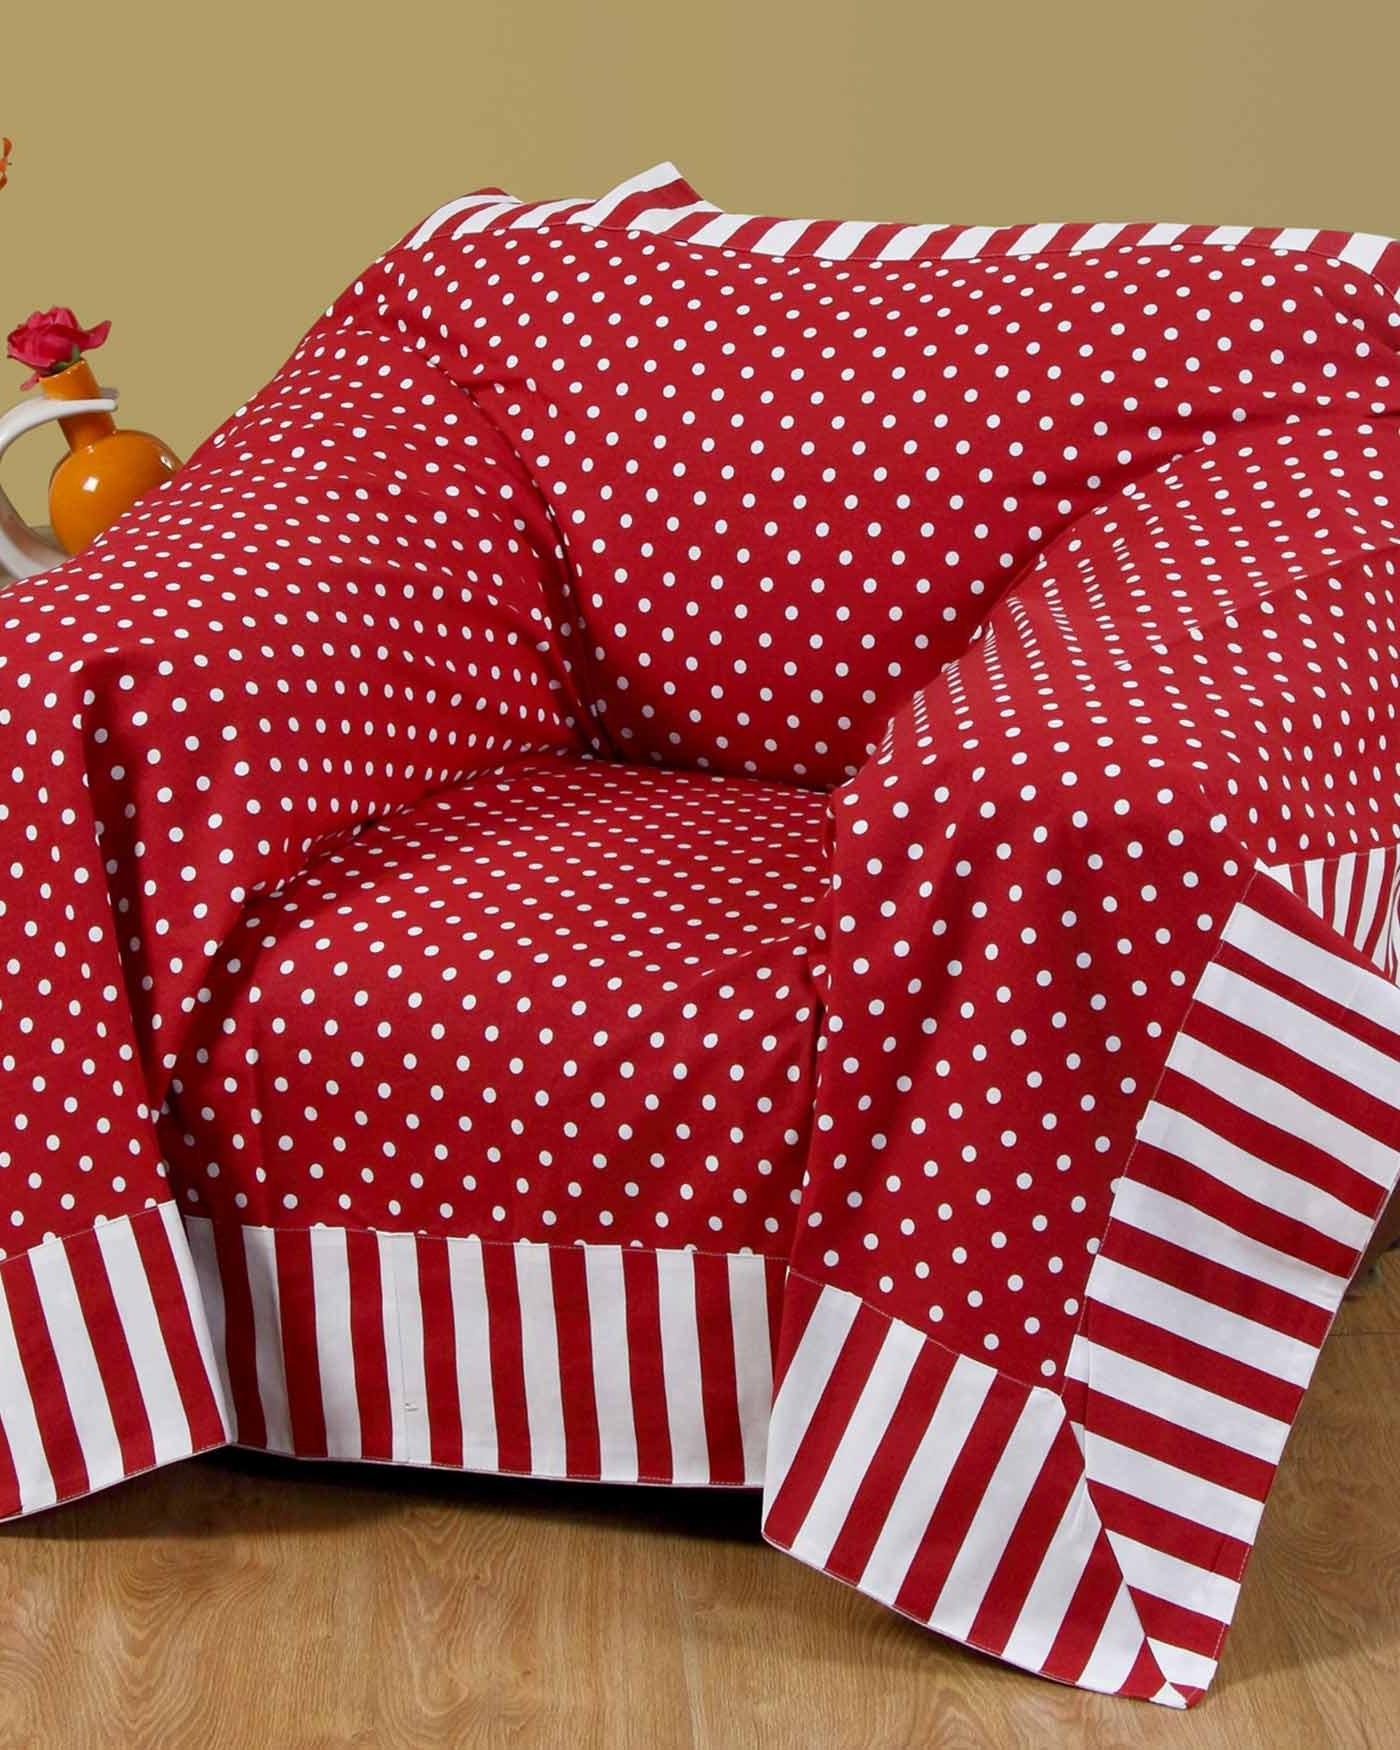 Most Up To Date Cotton Throws For Sofas And Chairs Within Cotton Red Polka Dots And Stripes Sofa Throw – Homescapes (View 9 of 20)